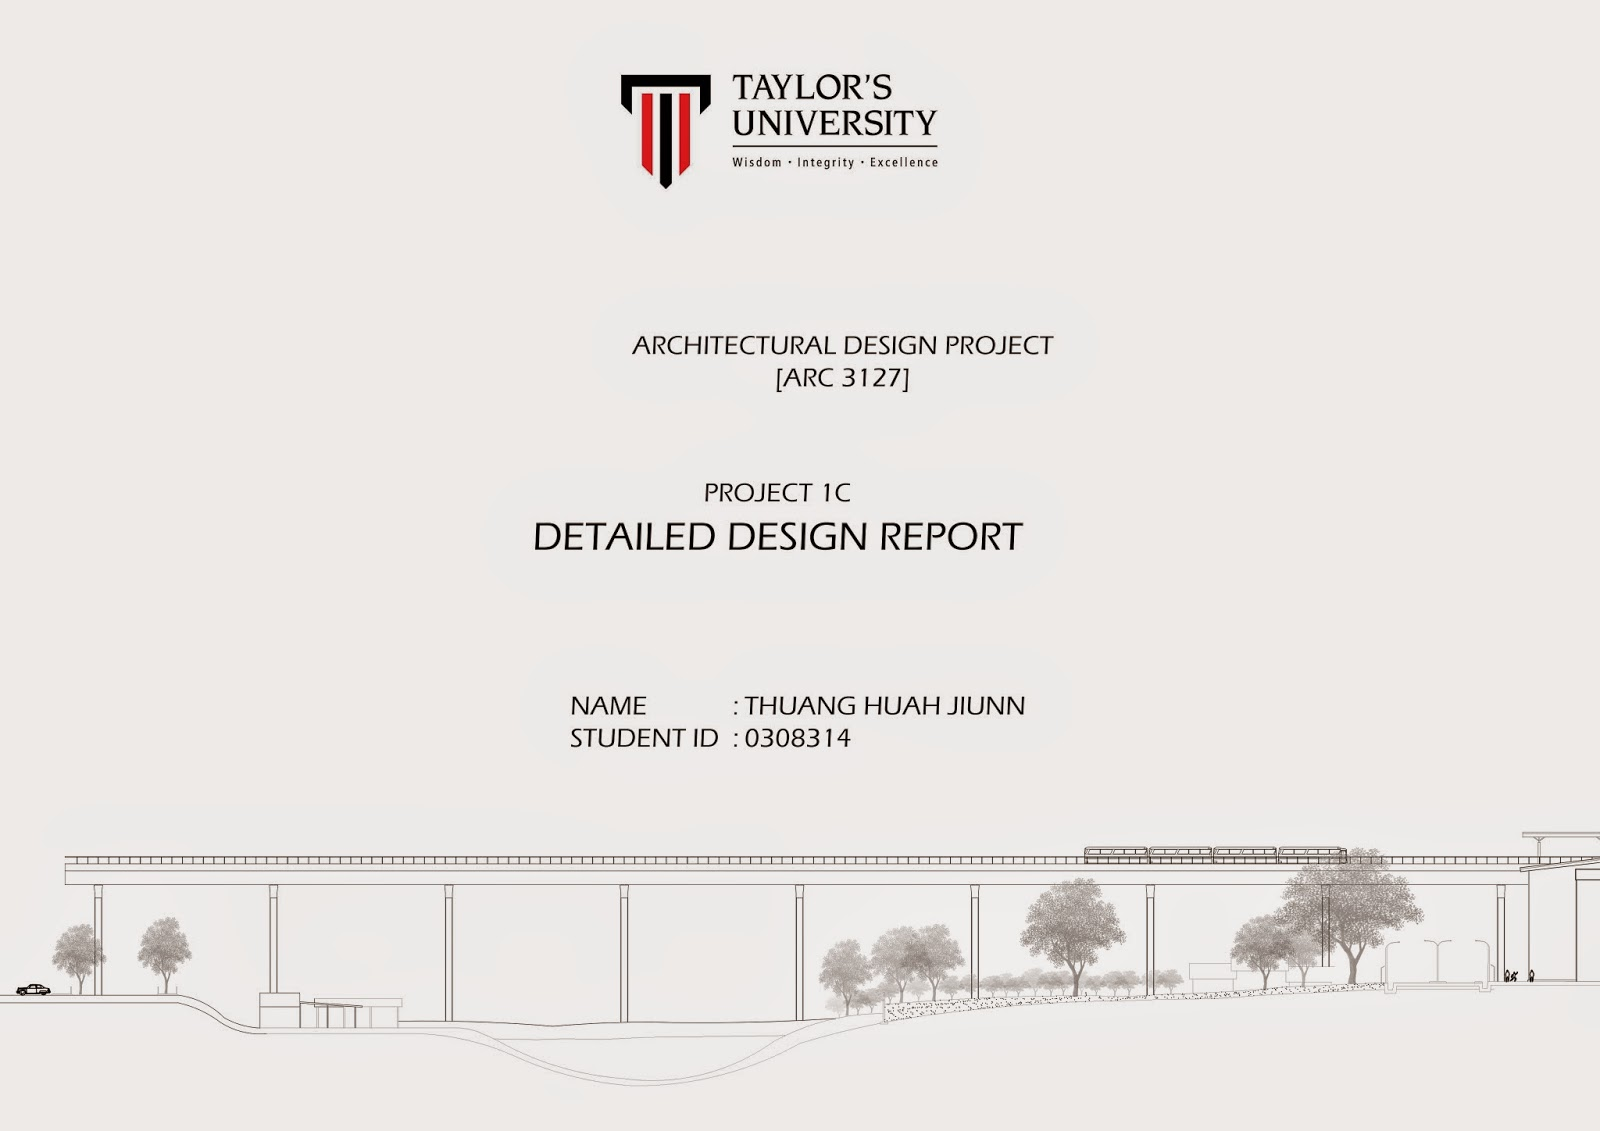 Below Show The DESIGN REPORT Of Works For Project 2 :